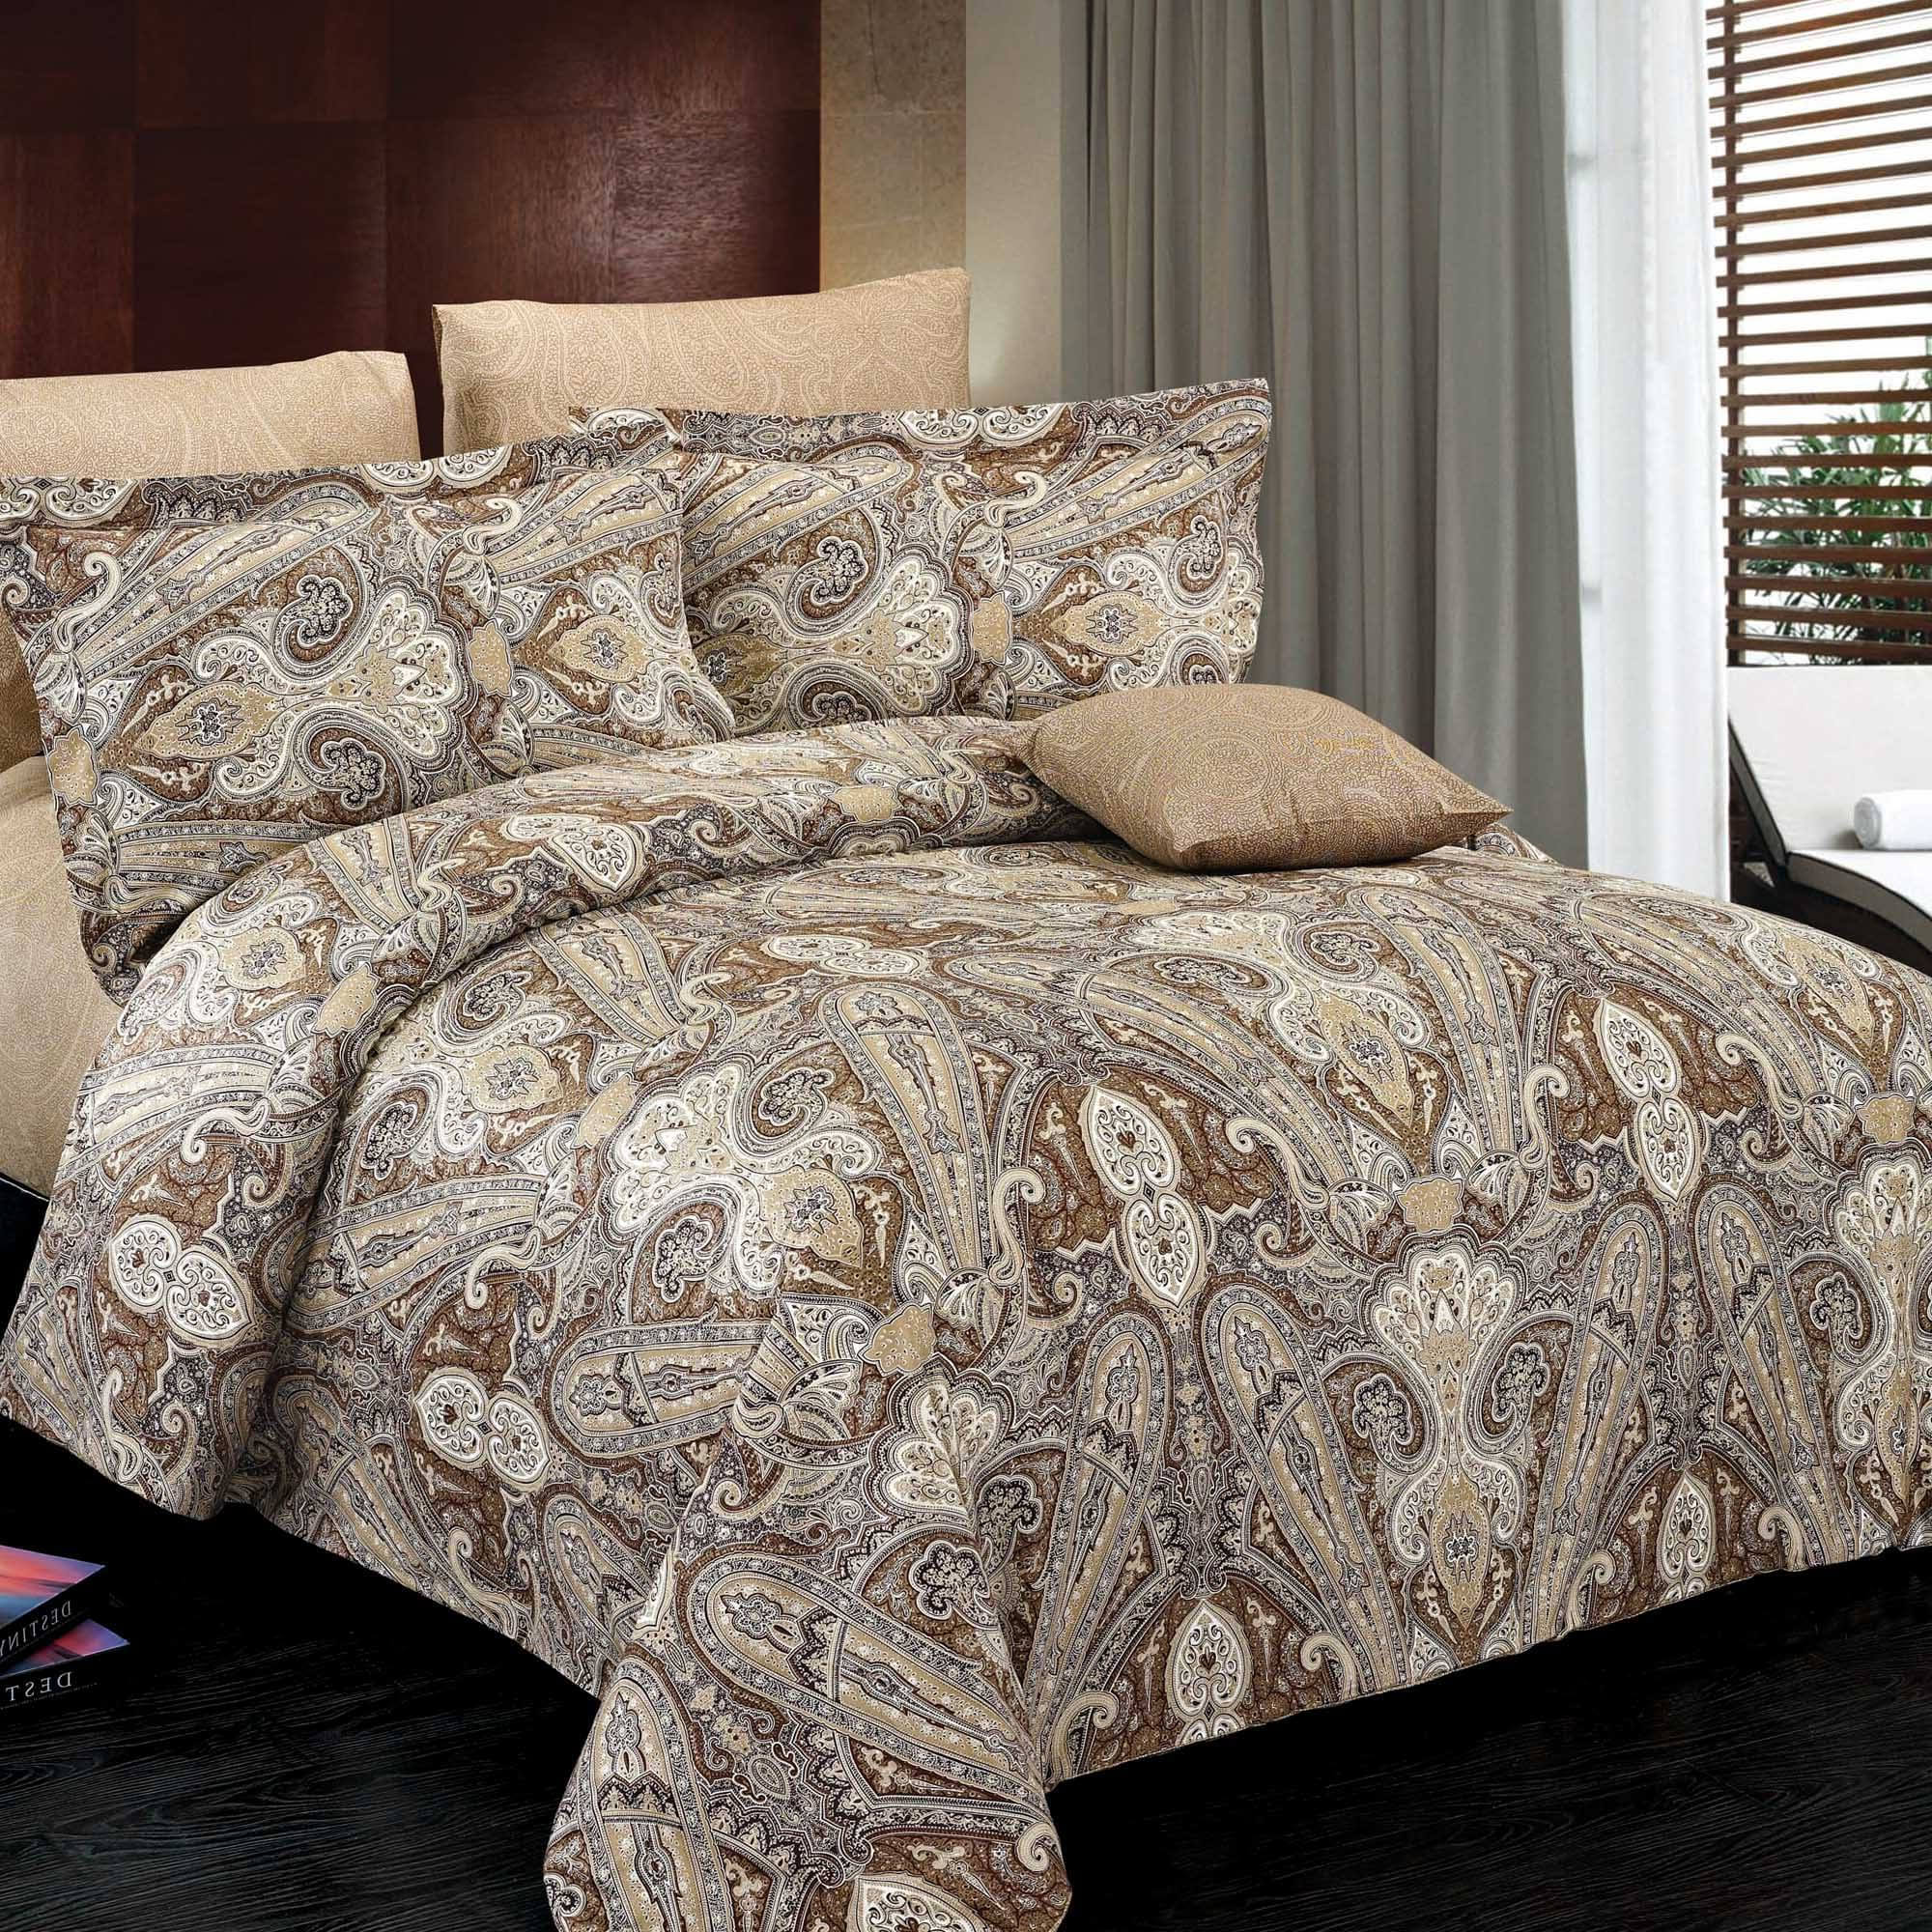 North Home Concord 100 Cotton Duvet Cover Set Queen